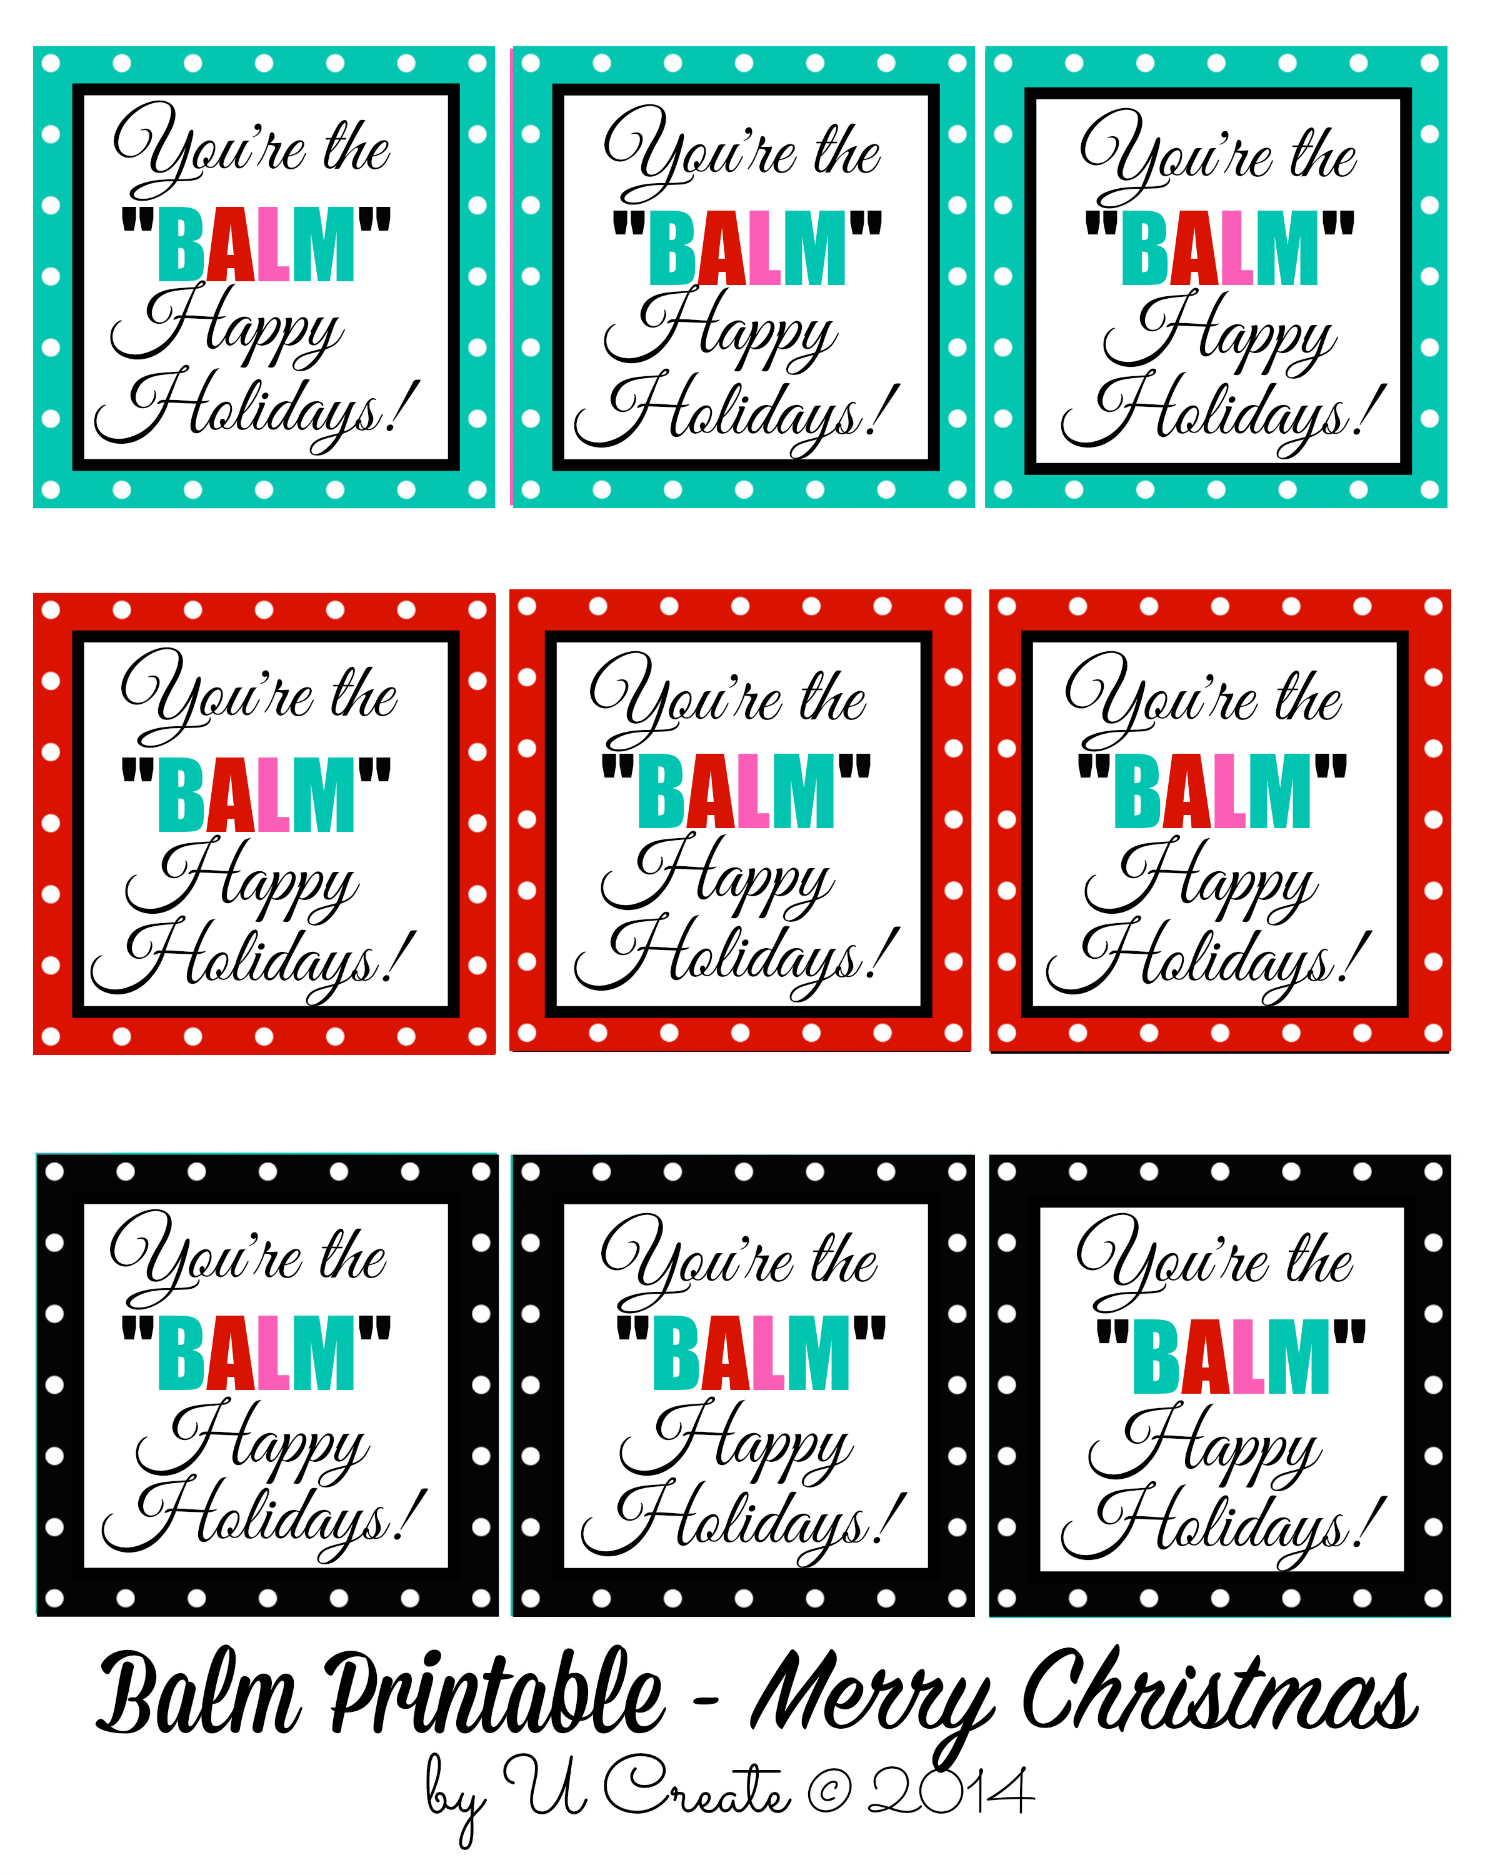 graphic relating to You're the Balm Free Printable known as Youre the BALM - Xmas Printables - U Build